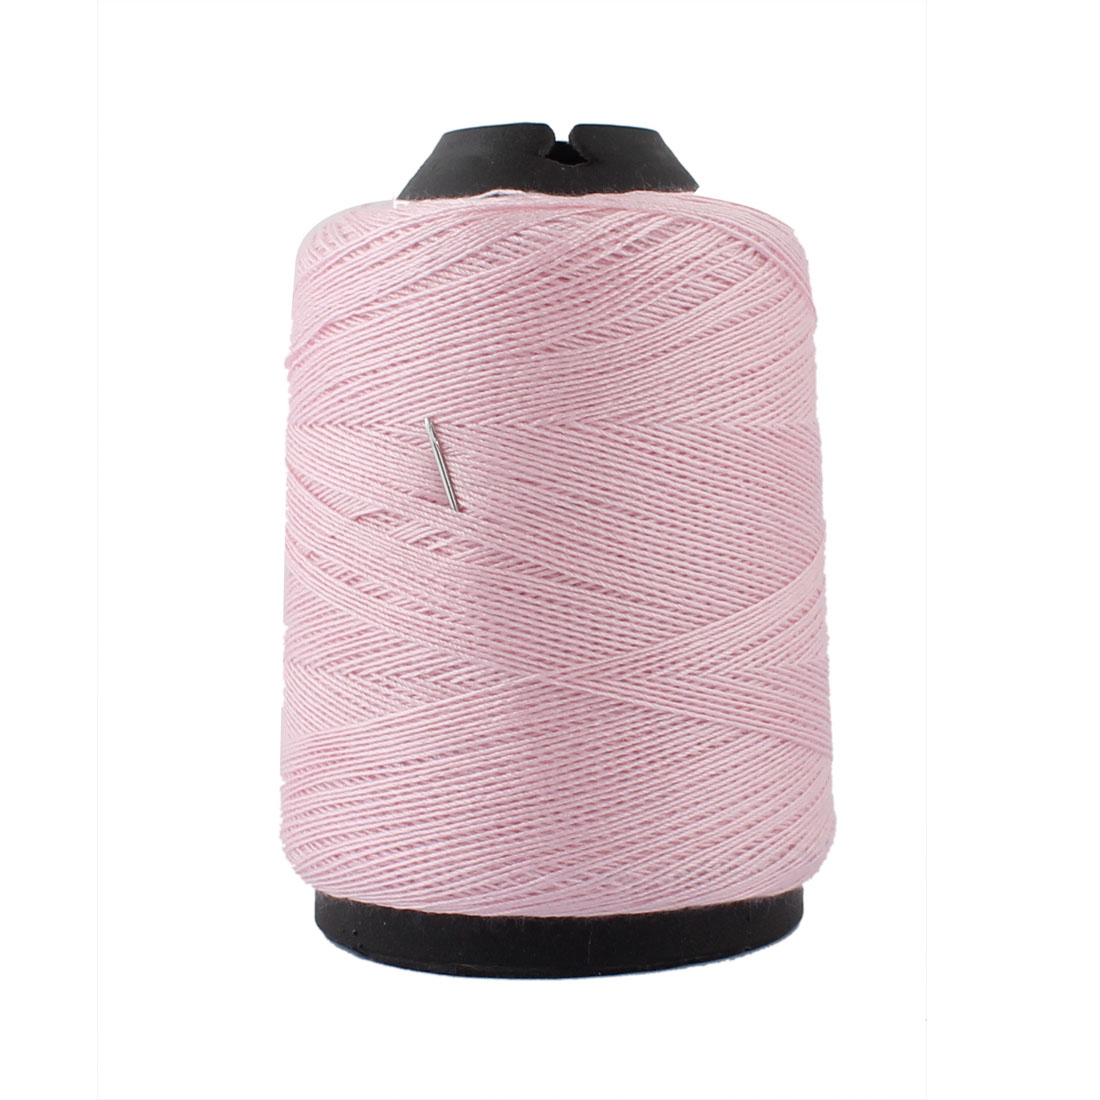 Tailor Machine Clothing Sewing Polyester Stitching Thread String Reel Spool Pink